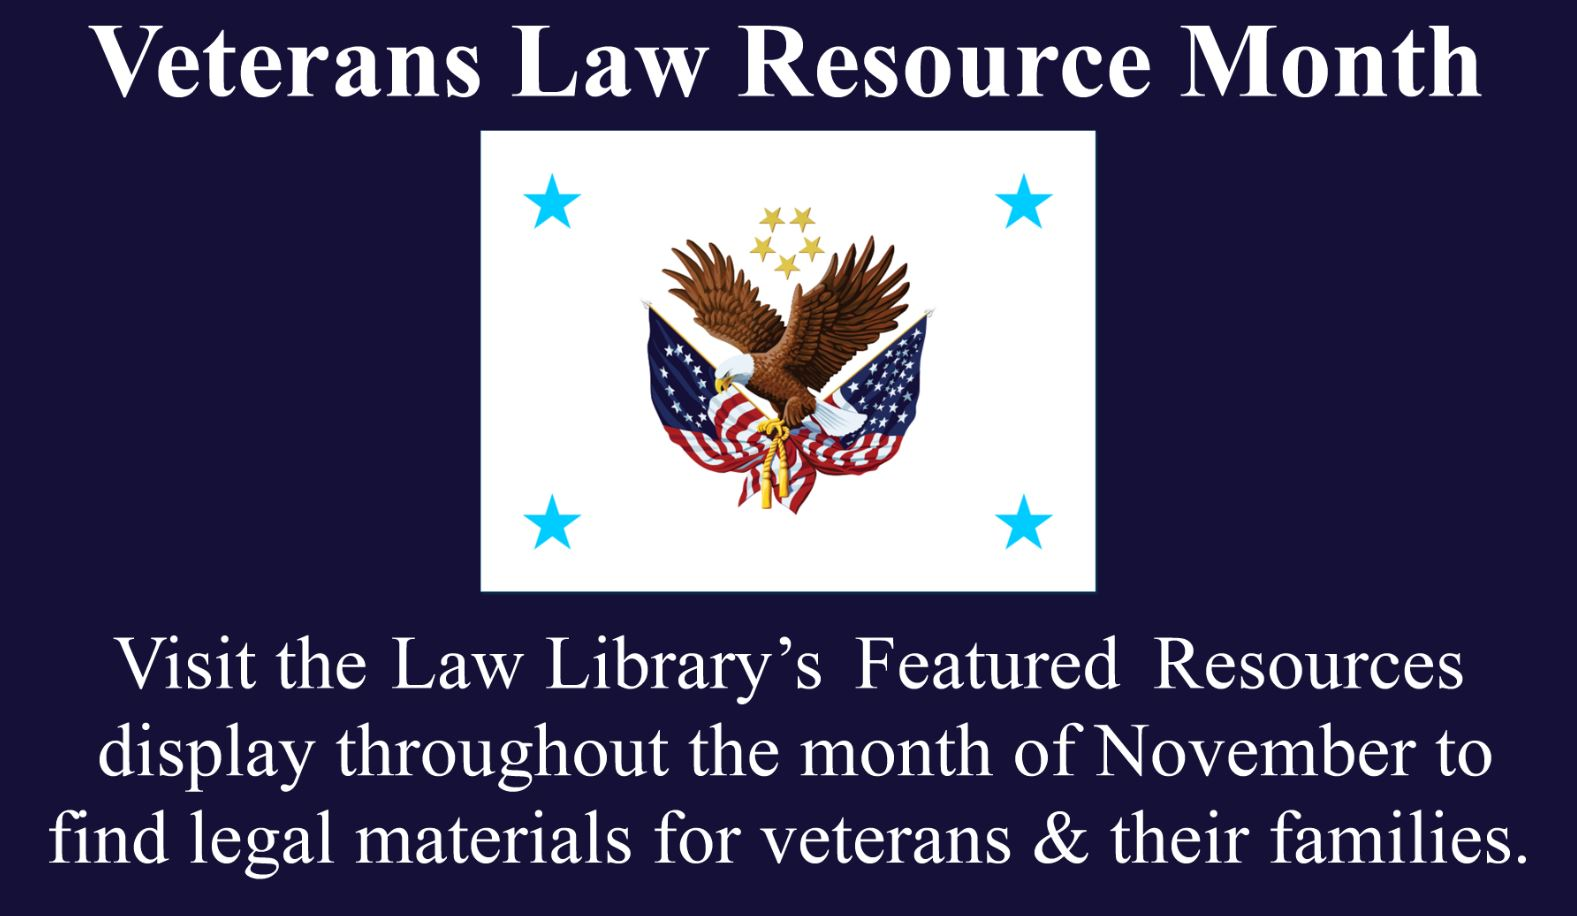 Veterans Law Resource Month - November 2018.JPG